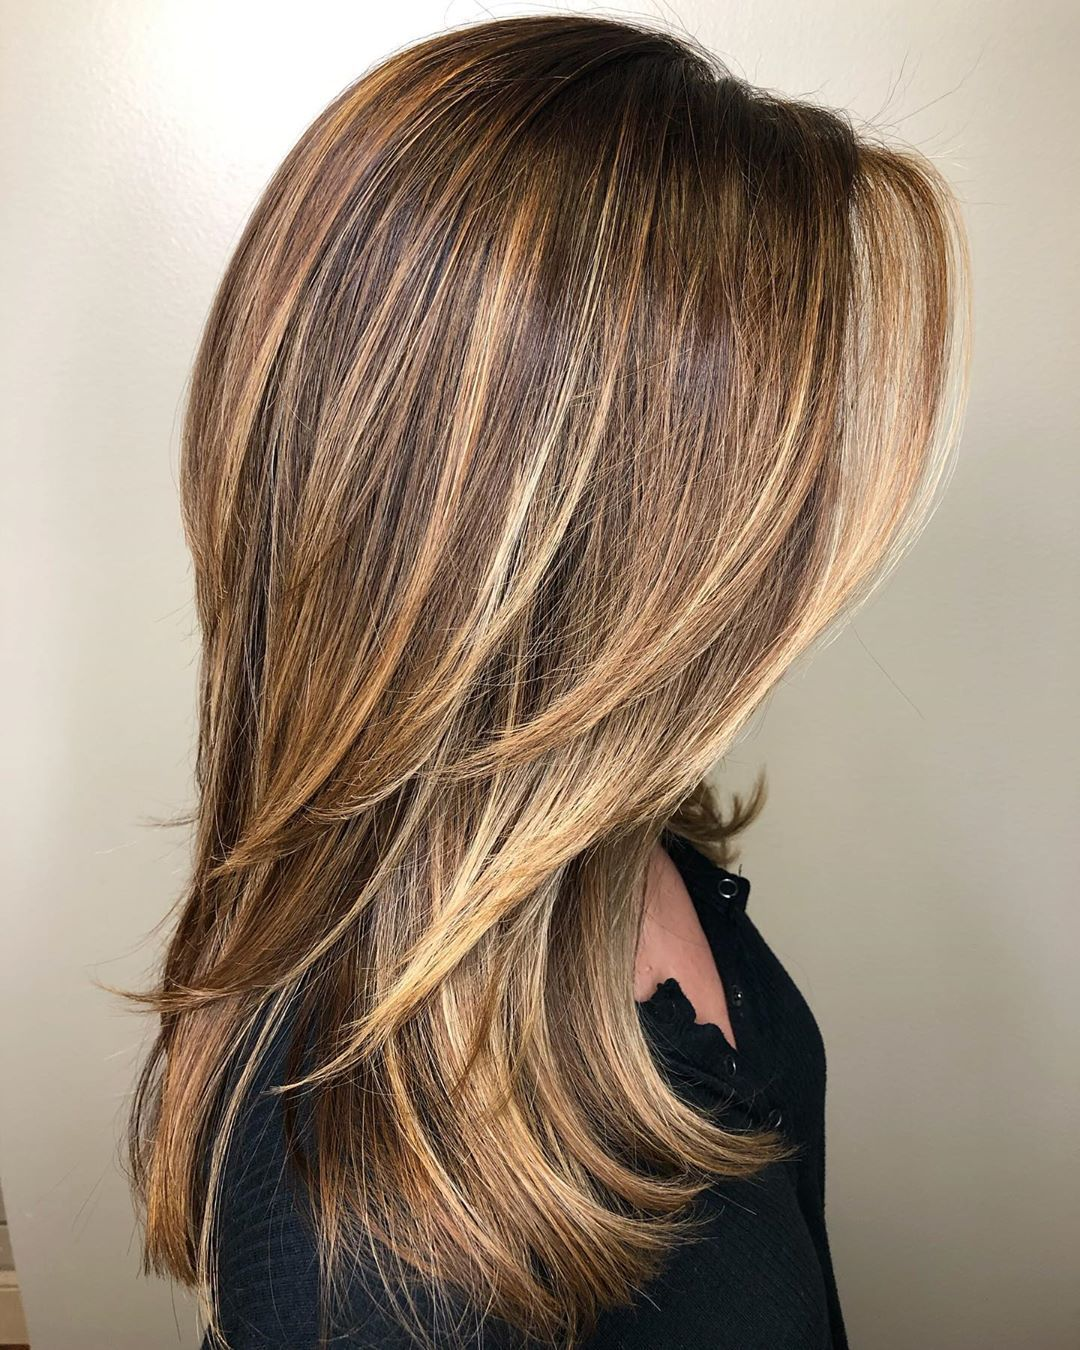 50 Best Blonde Highlights Ideas For A Chic Makeover In 2021 Hair Adviser Blonde Hair With Highlights Light Brown Hair Blonde Highlights